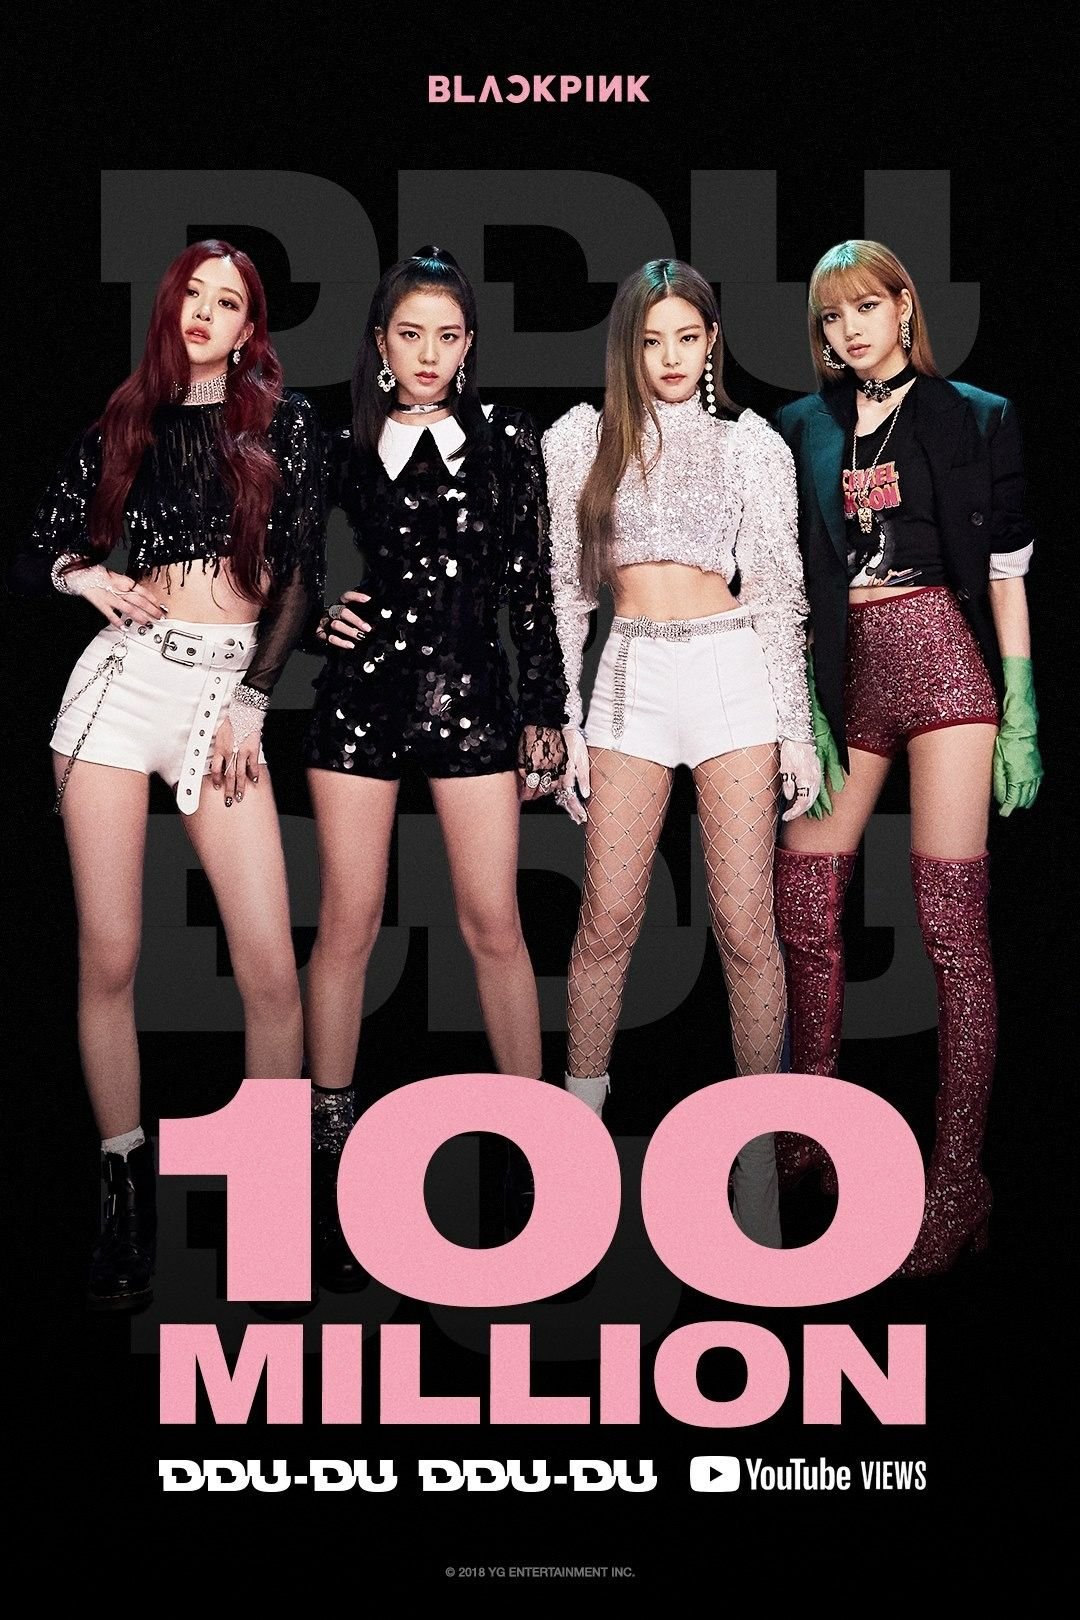 Congratz on 100m views on YouTube #blackpink #ddududdudu